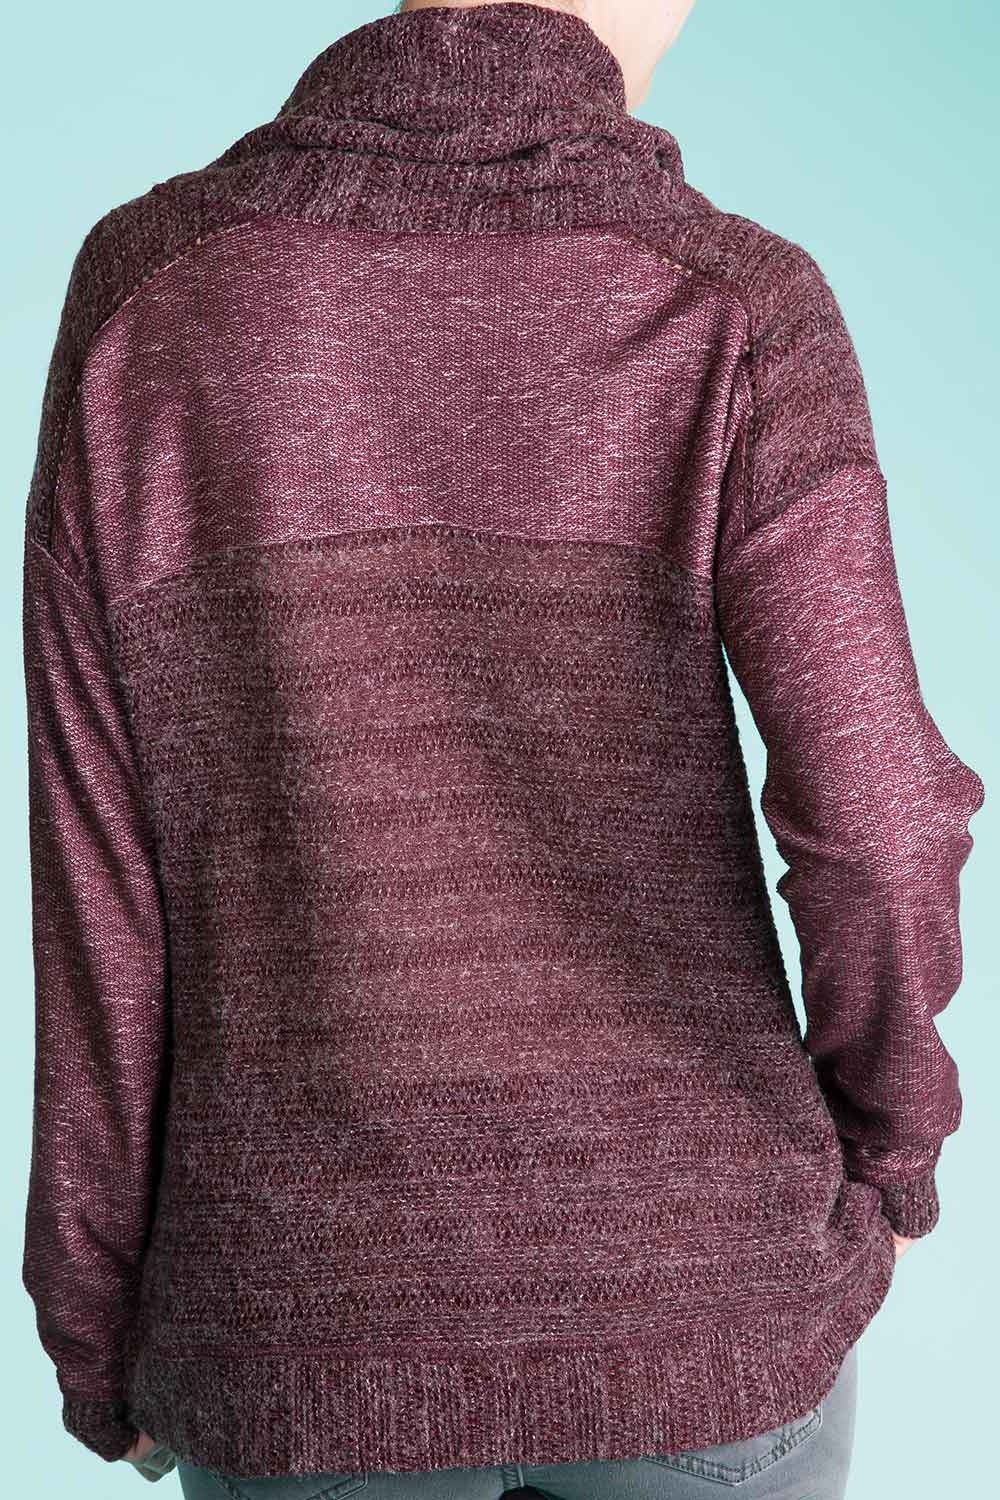 Type 2 Safe Inside Sweater